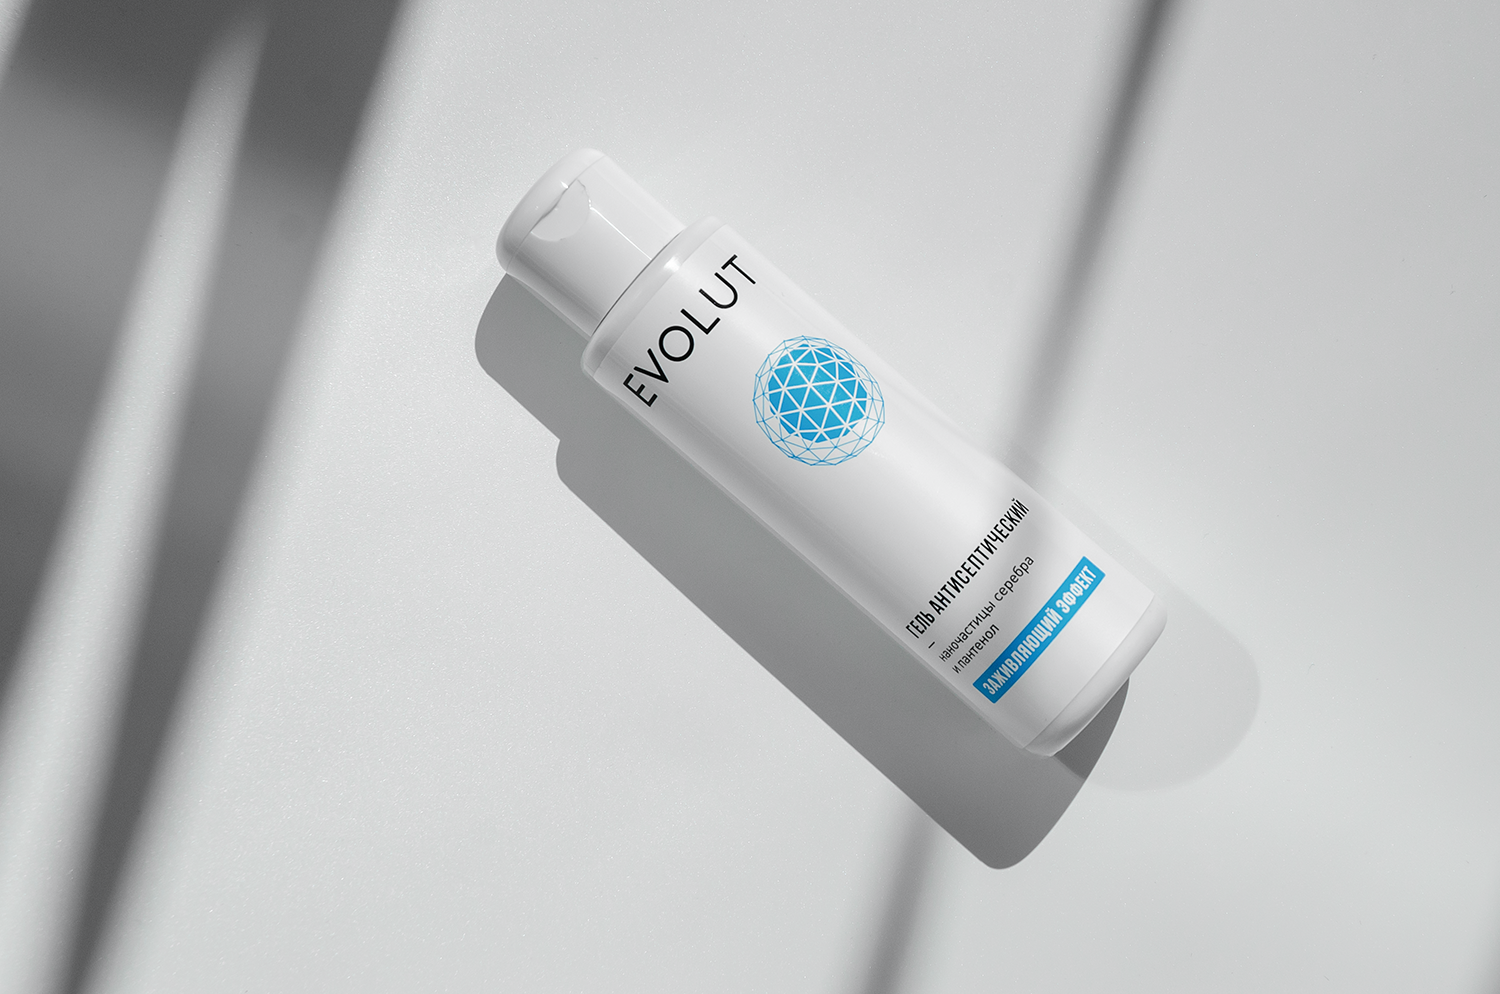 evolut antibacterial sanitizer